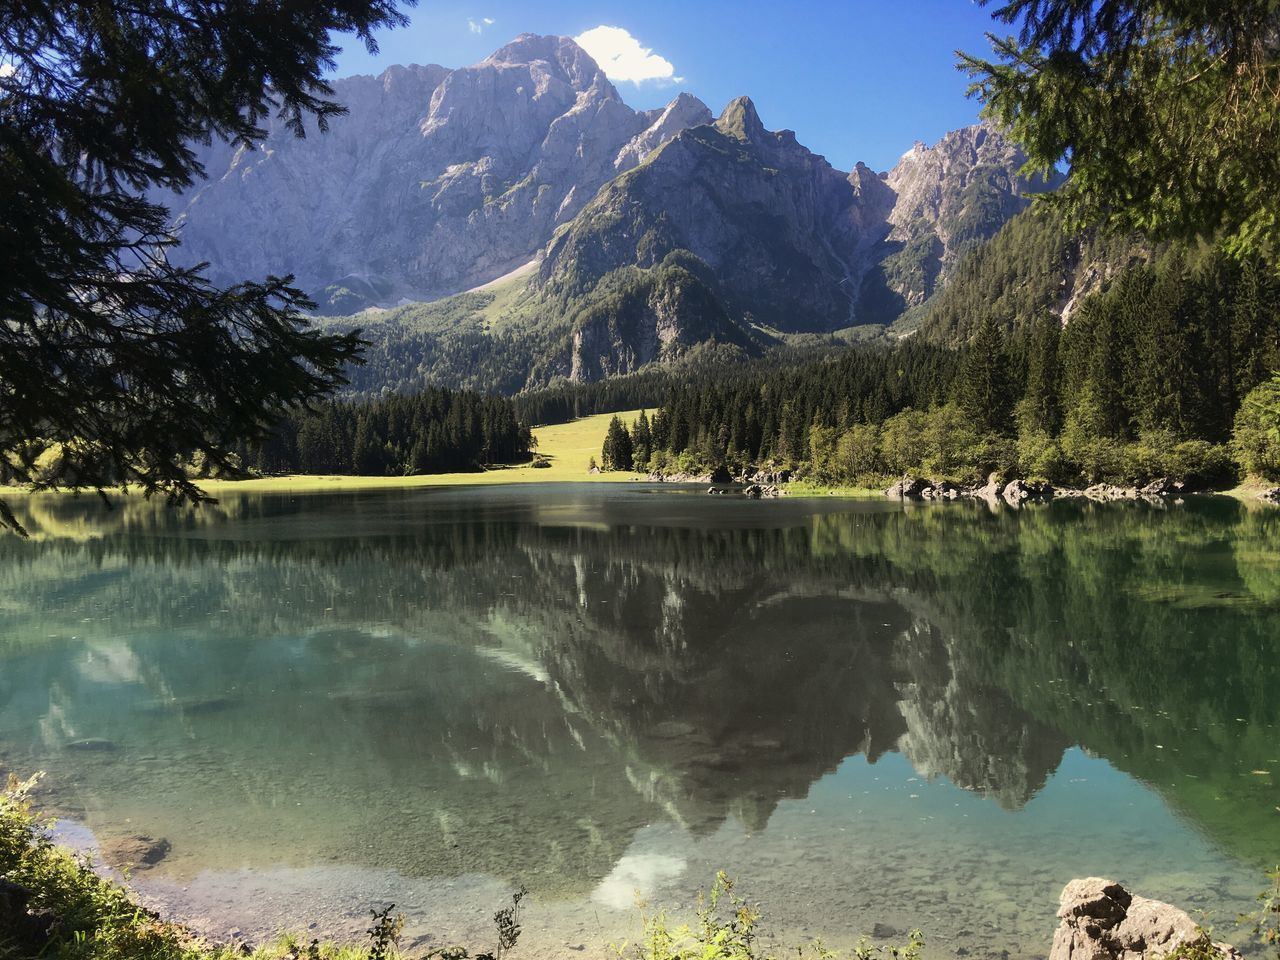 Fusine lake / tarvisio - udine - italy Lake Lakeview Beatiful Nature Green Nature Green Mountain Mountain View Mountains Light And Reflection